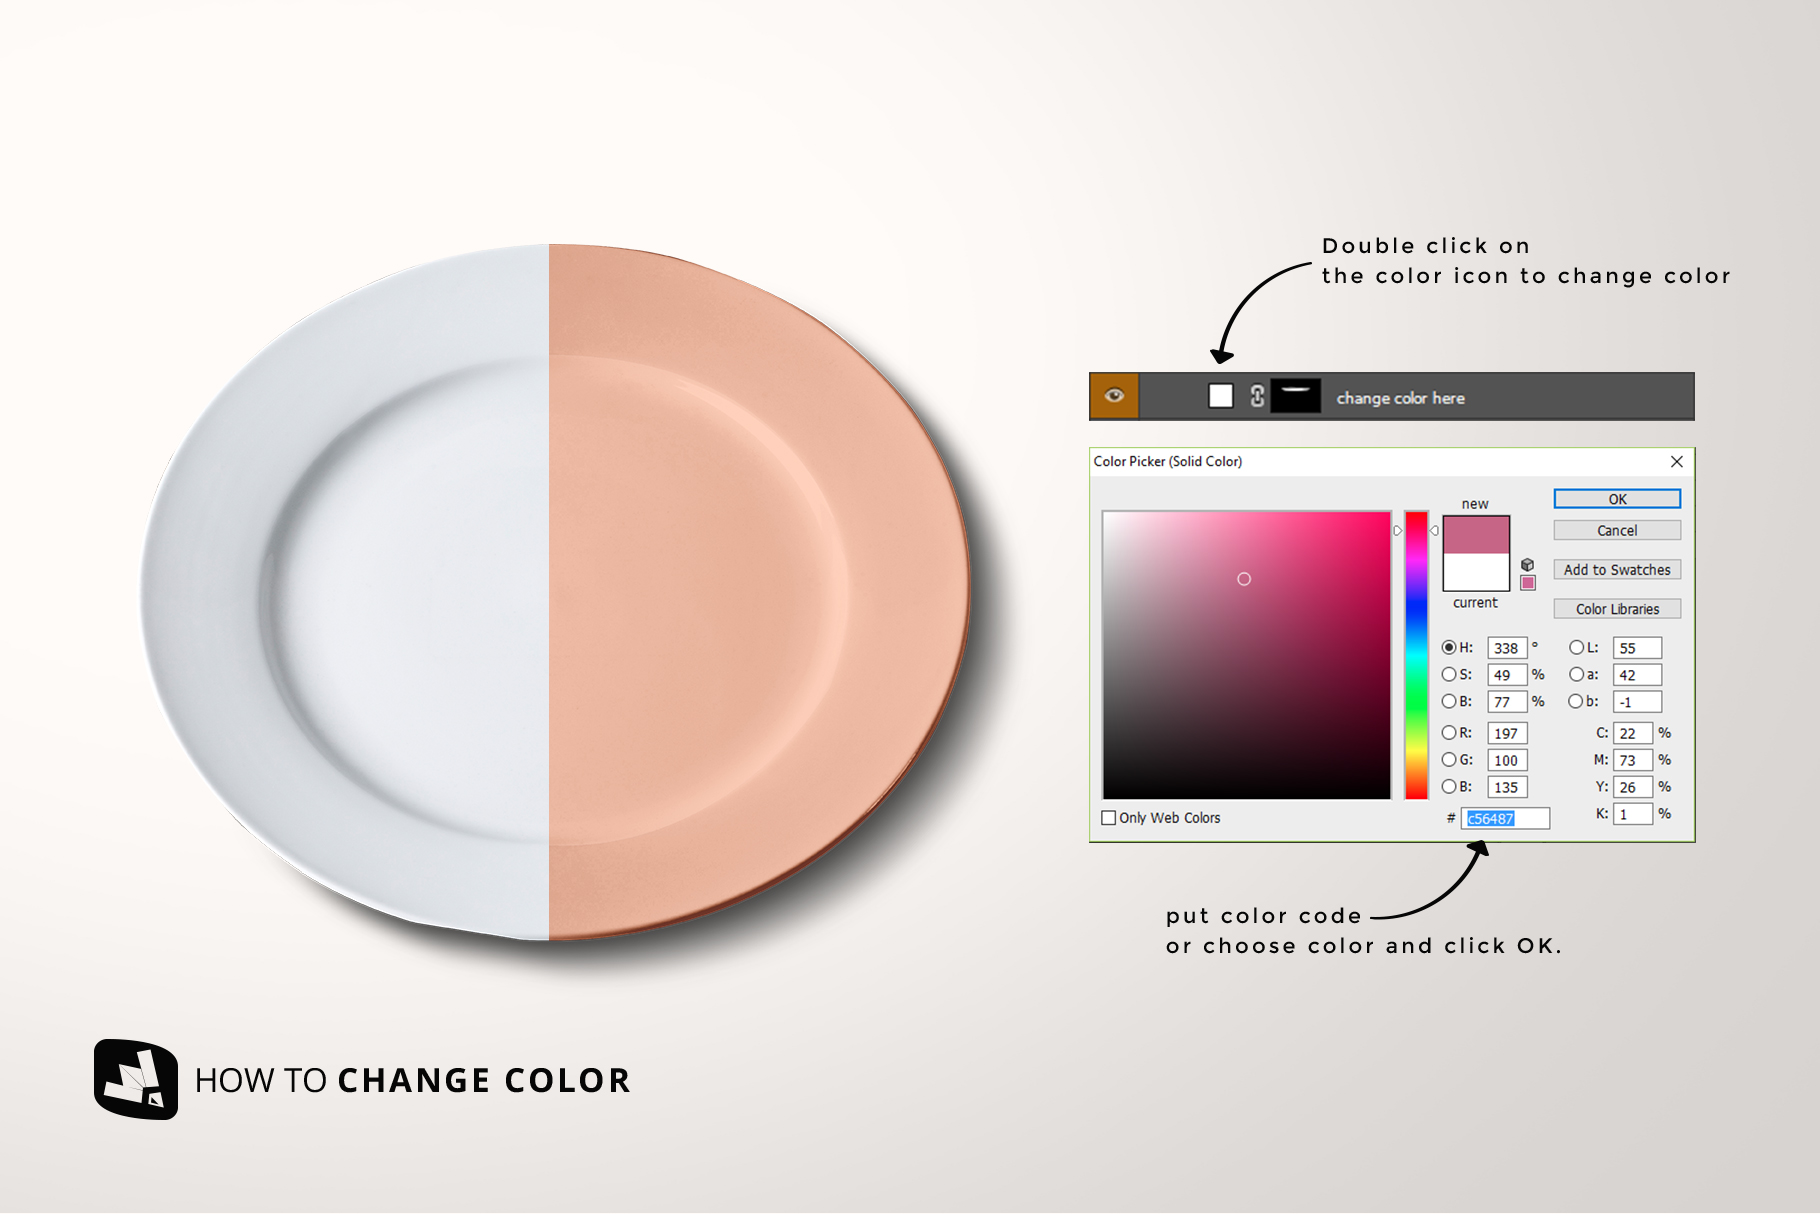 how to change color of the porcelain dinner plate mockup